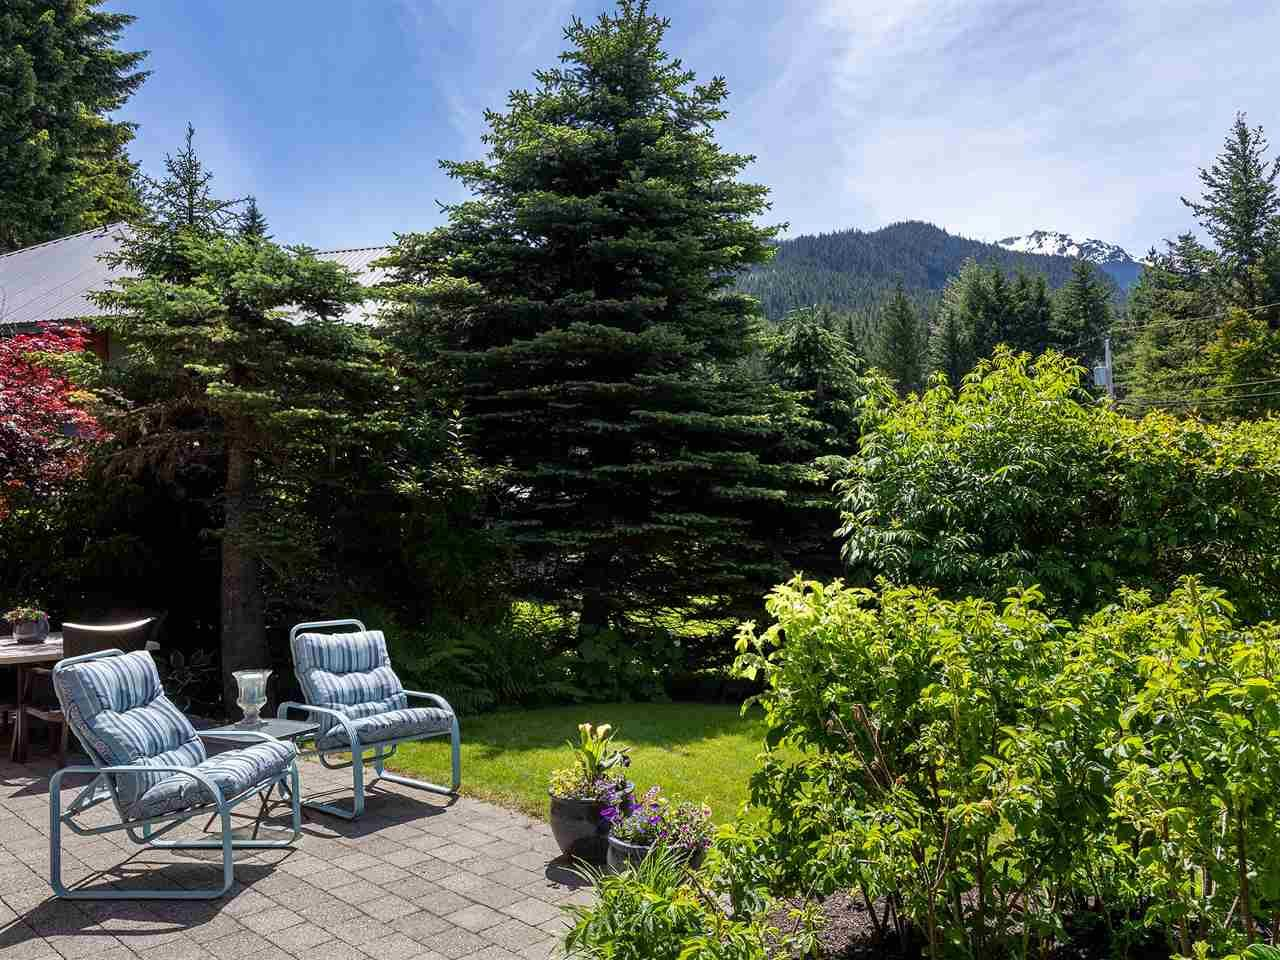 Photo 32: Photos: 3217 ARCHIBALD WAY in Whistler: Alta Vista House for sale : MLS®# R2468991